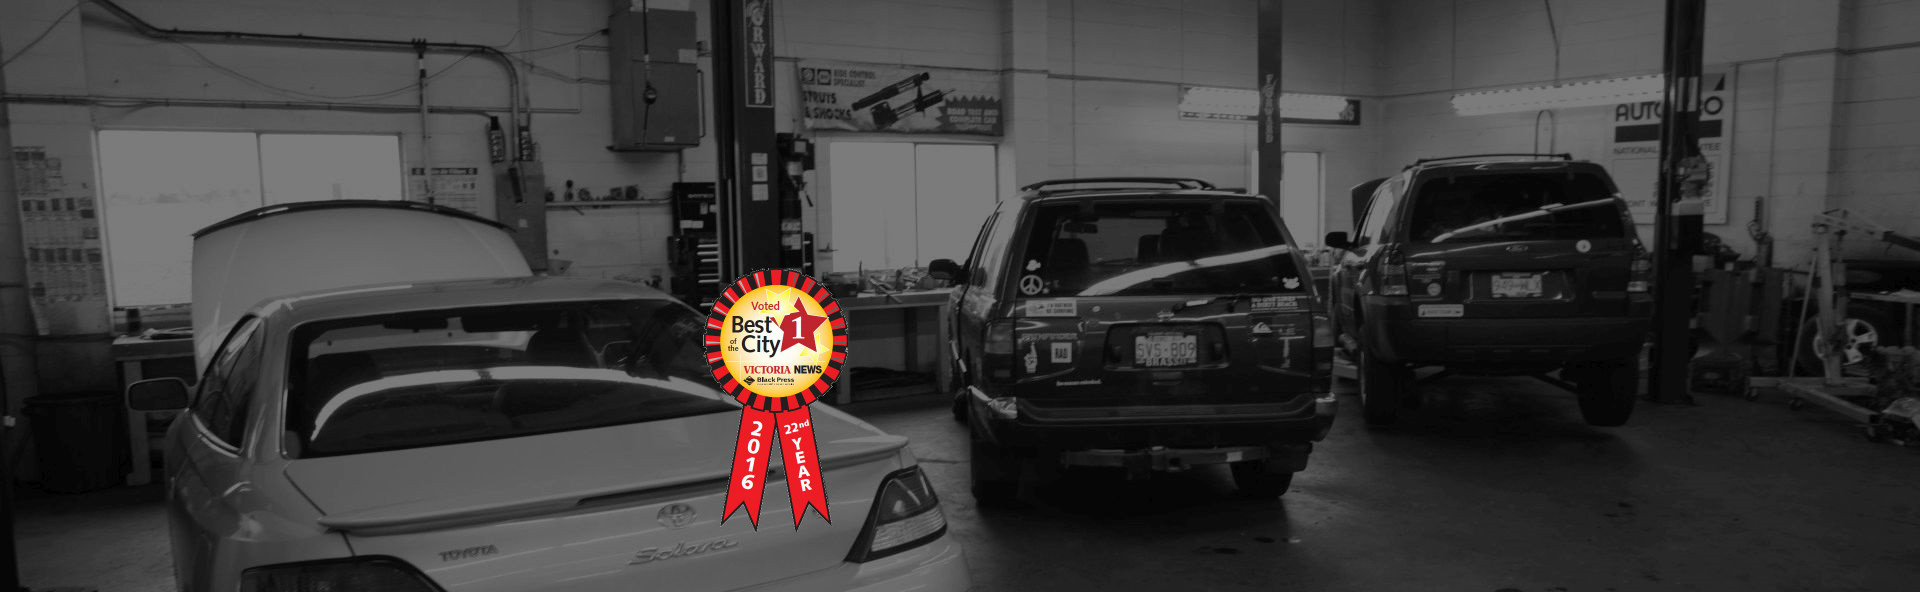 Searles Auto Repair - Best of the City 2016